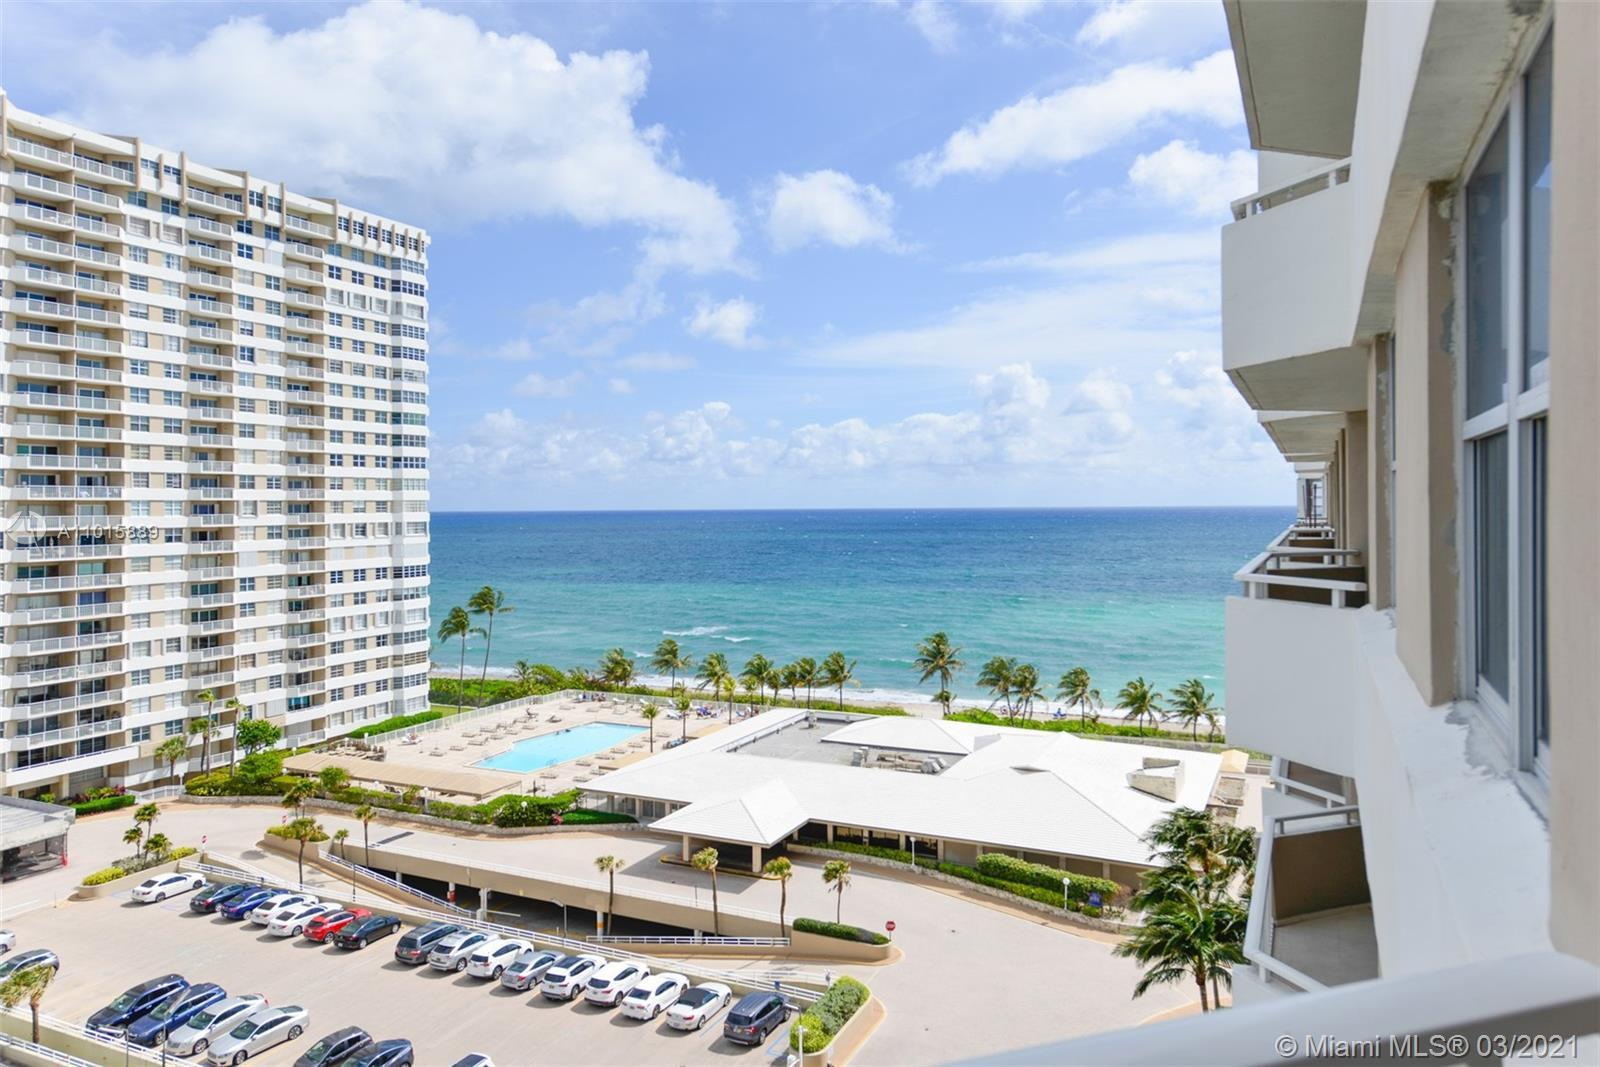 Gorgeous updated unit spacious and bright.  Has lots of closet space faces north with both ocean and